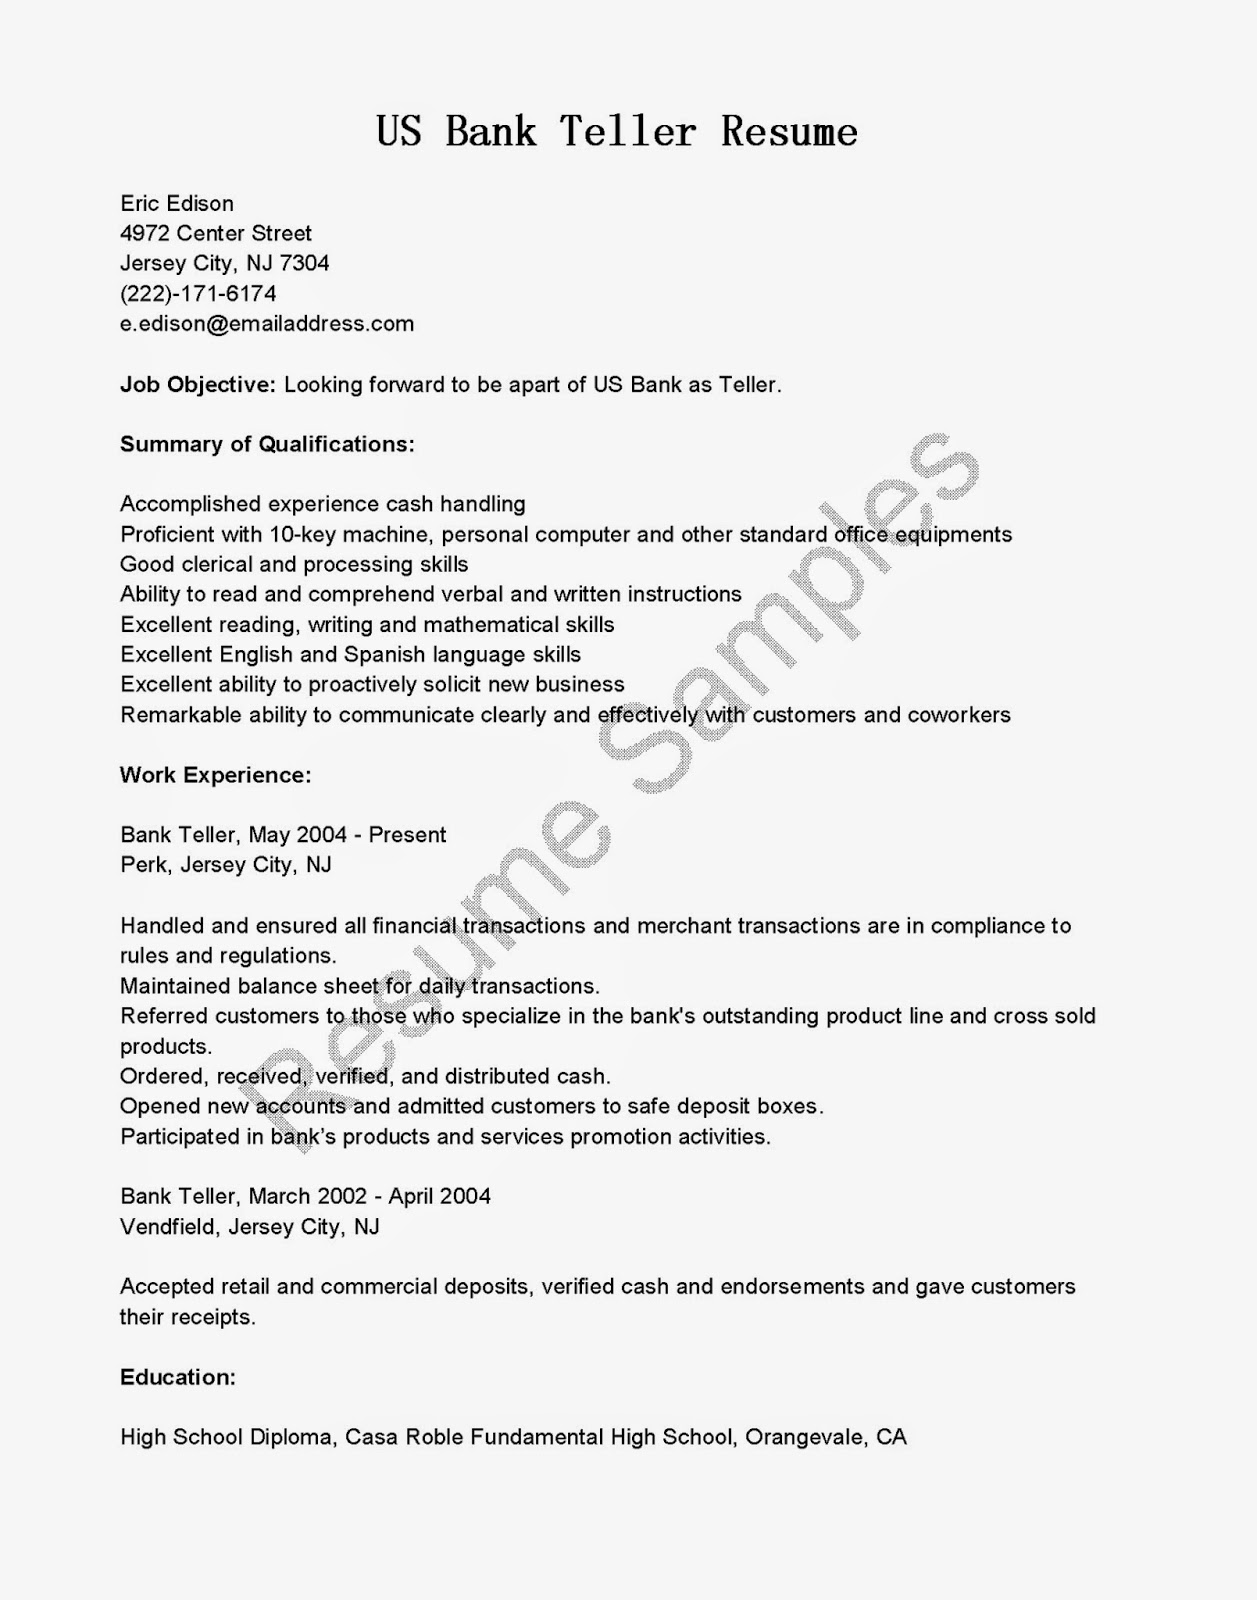 bank resume examples best objective us intel cctv technician word headshot business Resume Teller Resume Objective